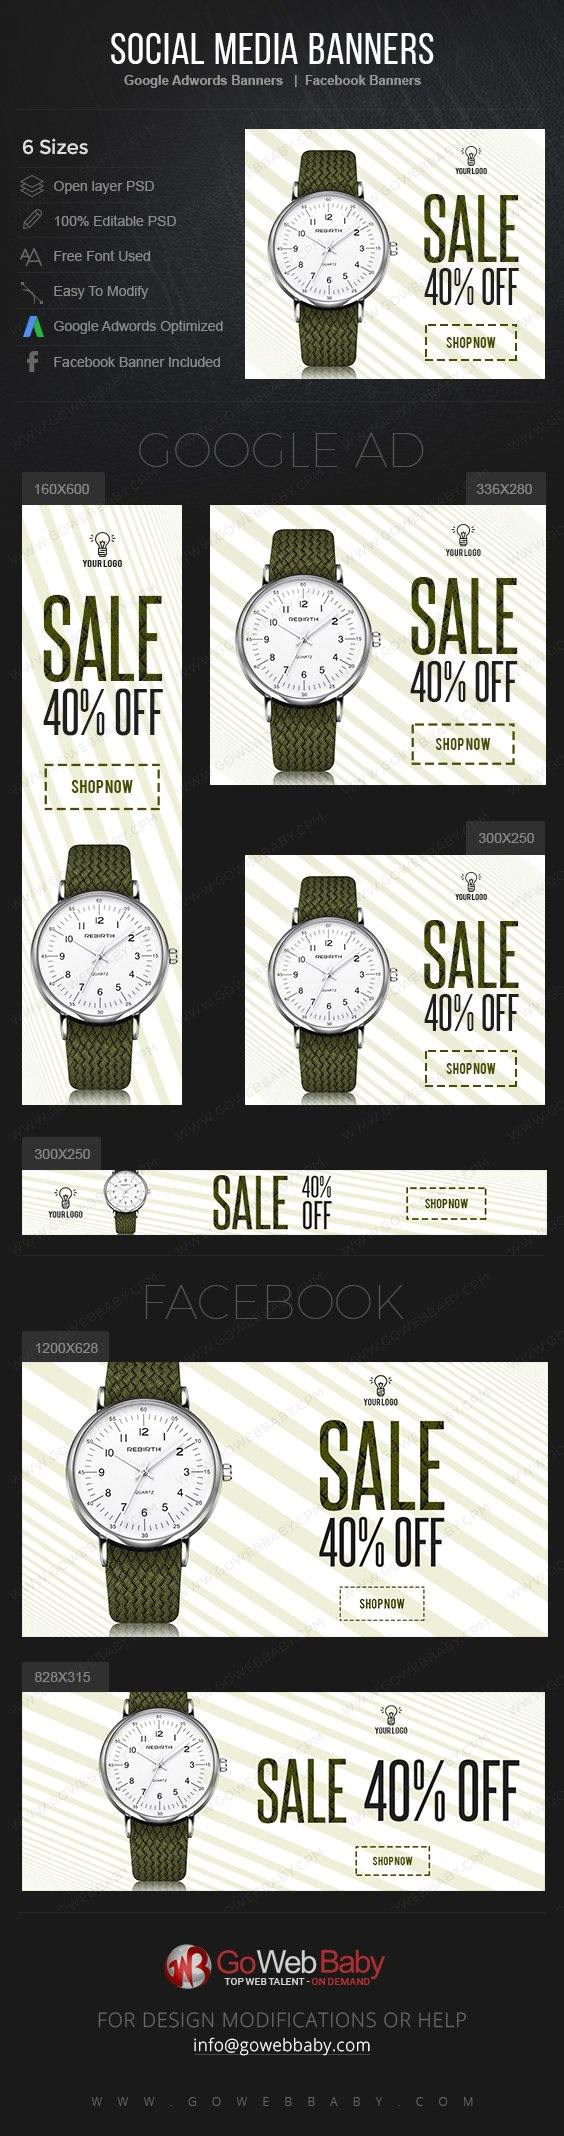 Google Adwords Display Banner With Facebook Banners - Elegant Watch For Men - GoWebBaby.Com